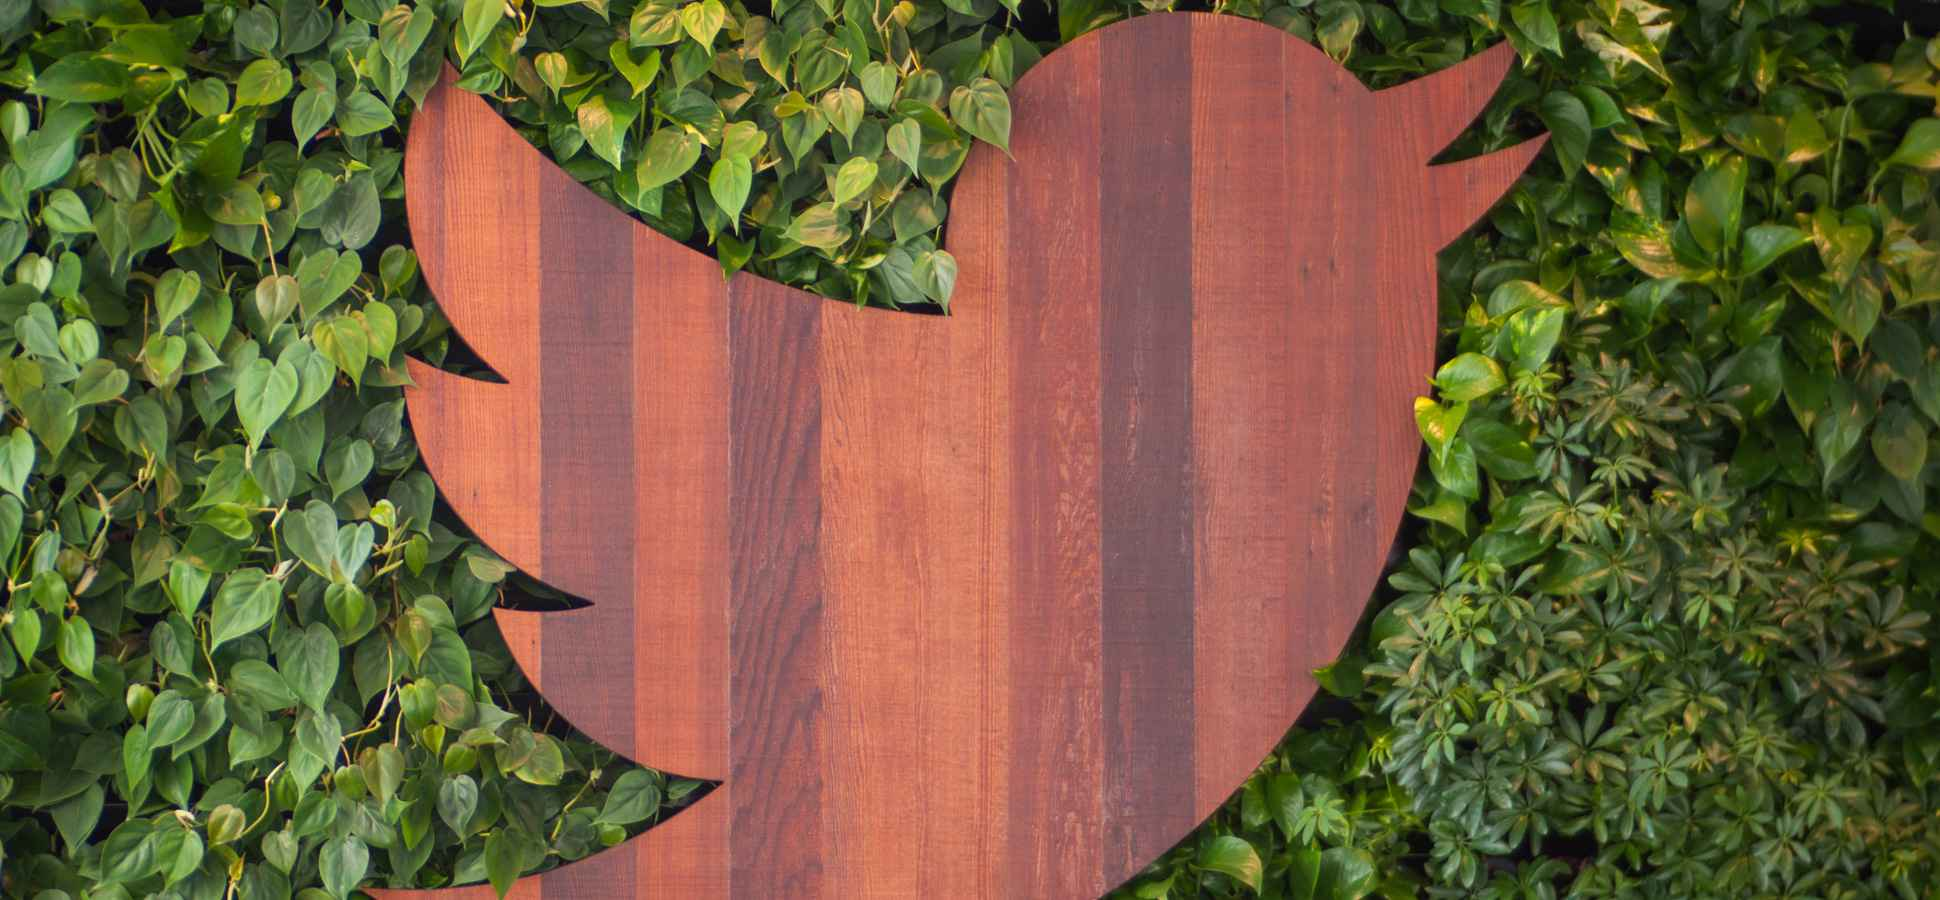 Twitter Interns Make the Equivalent of $81,000 a Year (Yikes!)